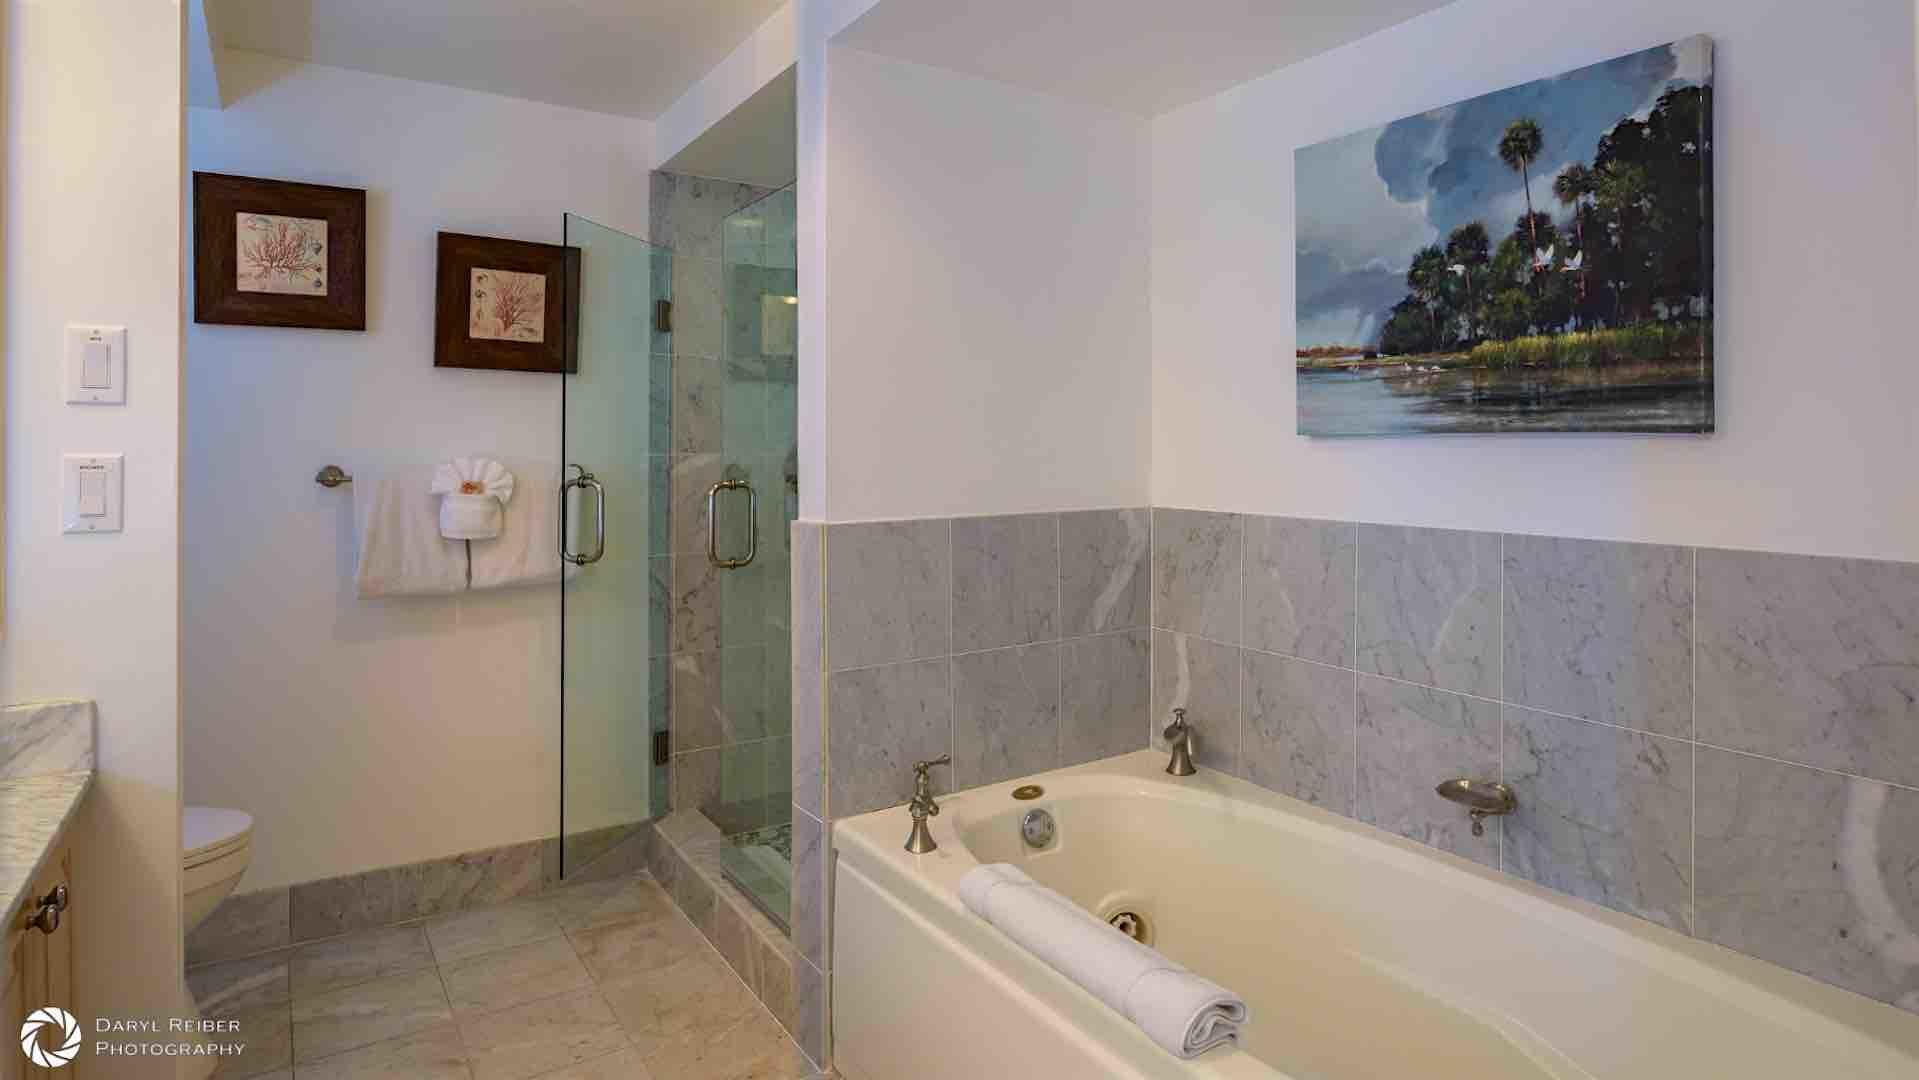 The master bathroom offers both a Jacuzzi and a large glass shower...